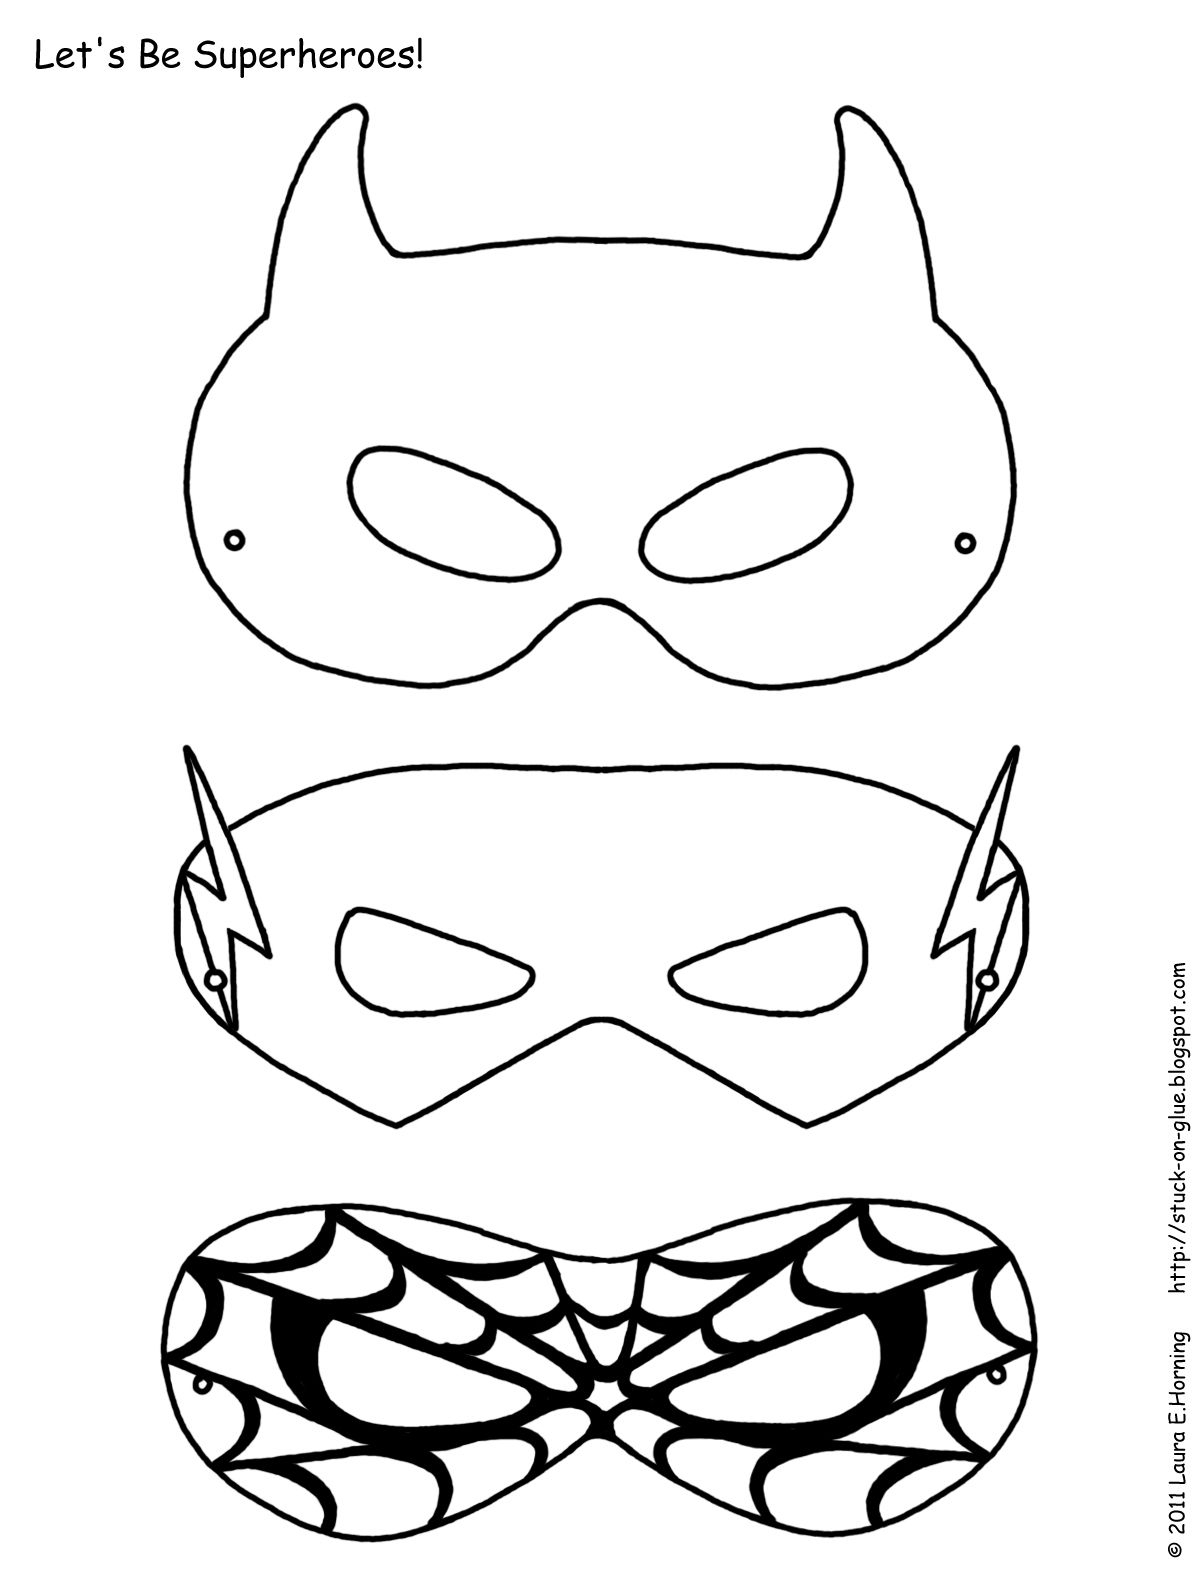 Halloween coloring pages free printable masks - Printable Super Hero Masks Hours Of Fun Color Them The Way They Want Glue To A Cereal Box Cut Use Pipe Cleaners To Wrap Around Or Elastic So Simple